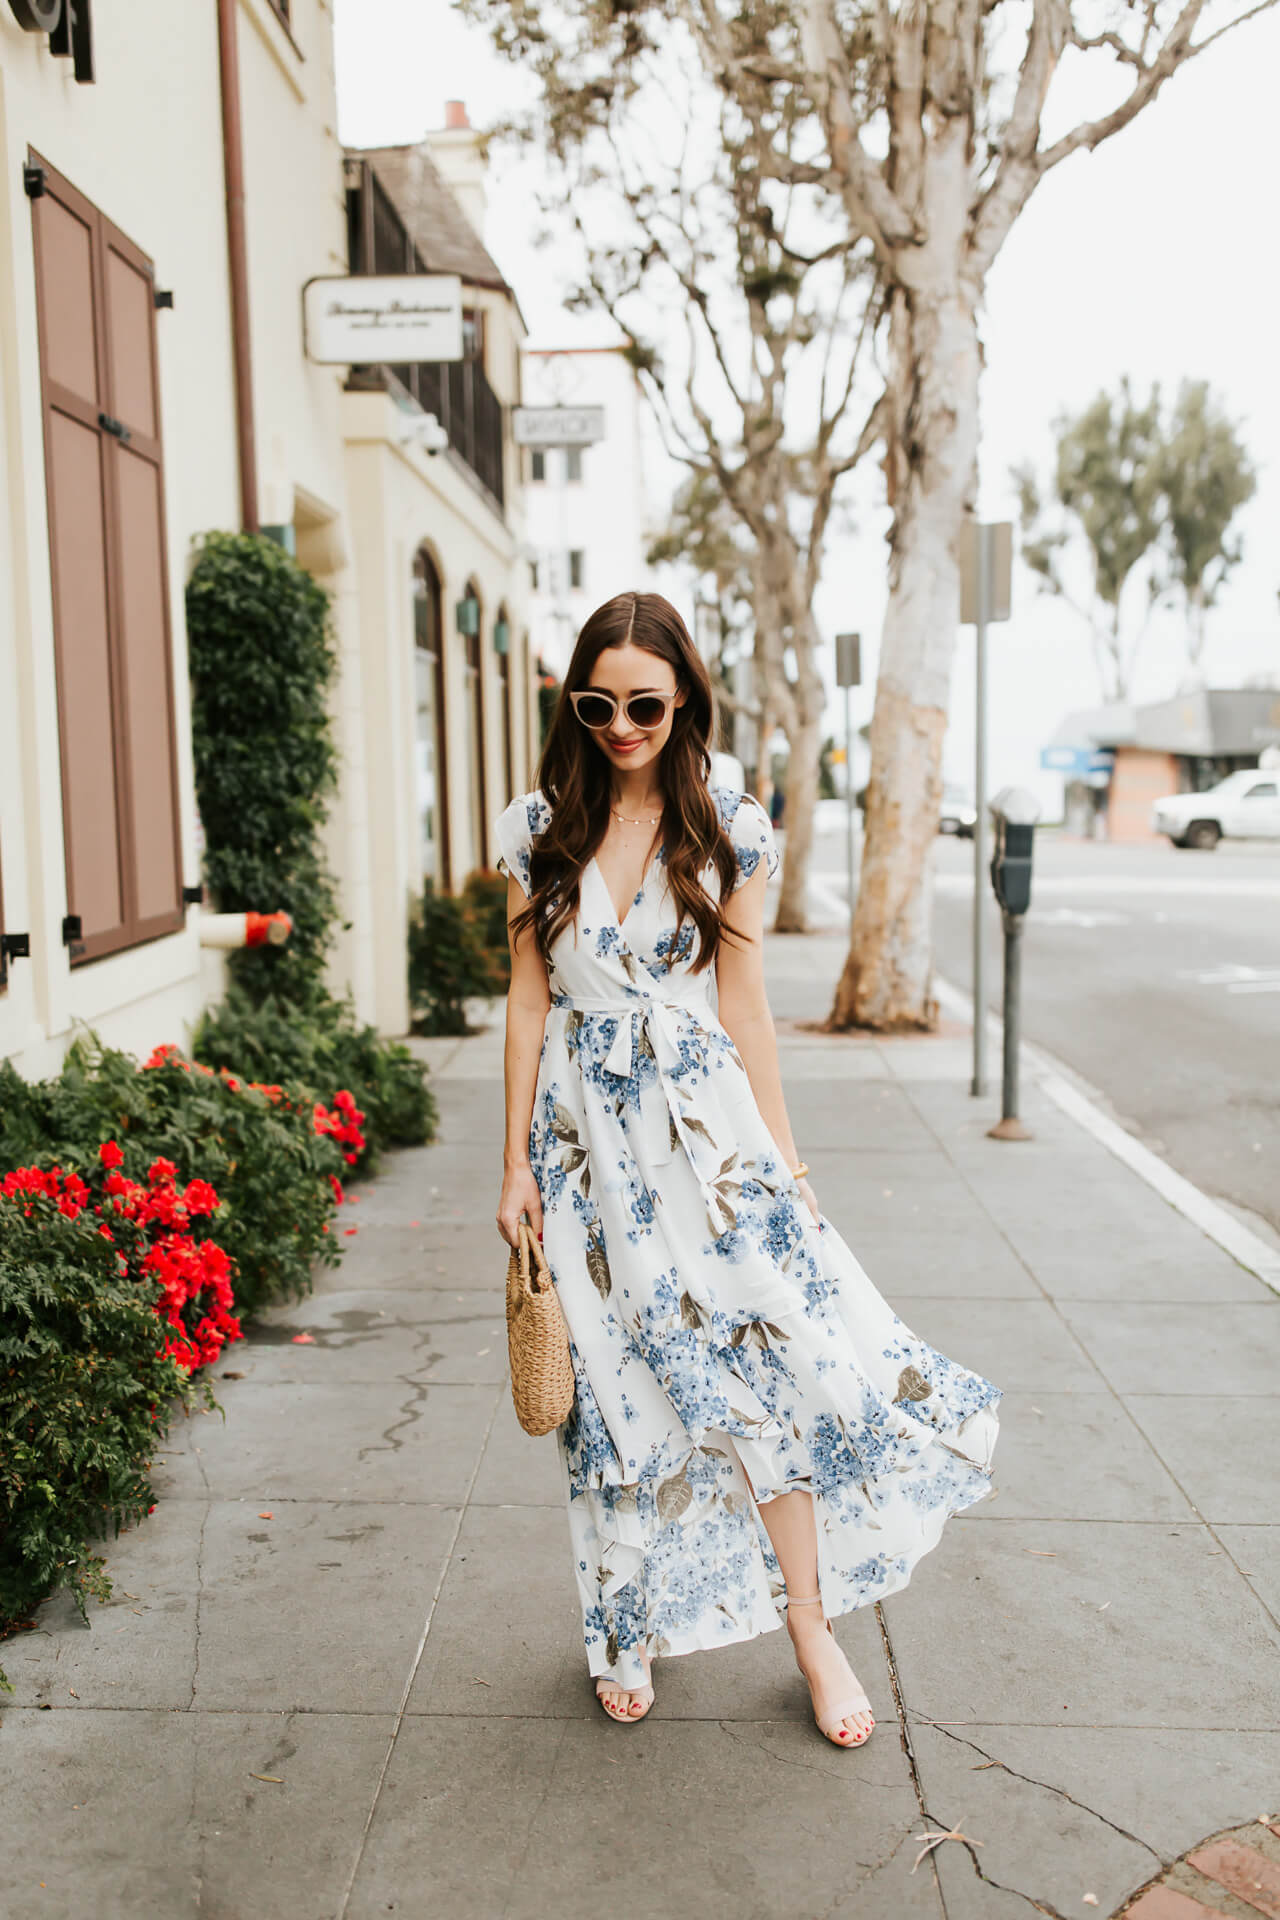 cute outfit inspiration for Easter - M Loves M Los Angeles and Orange County fashion blogger @marmar